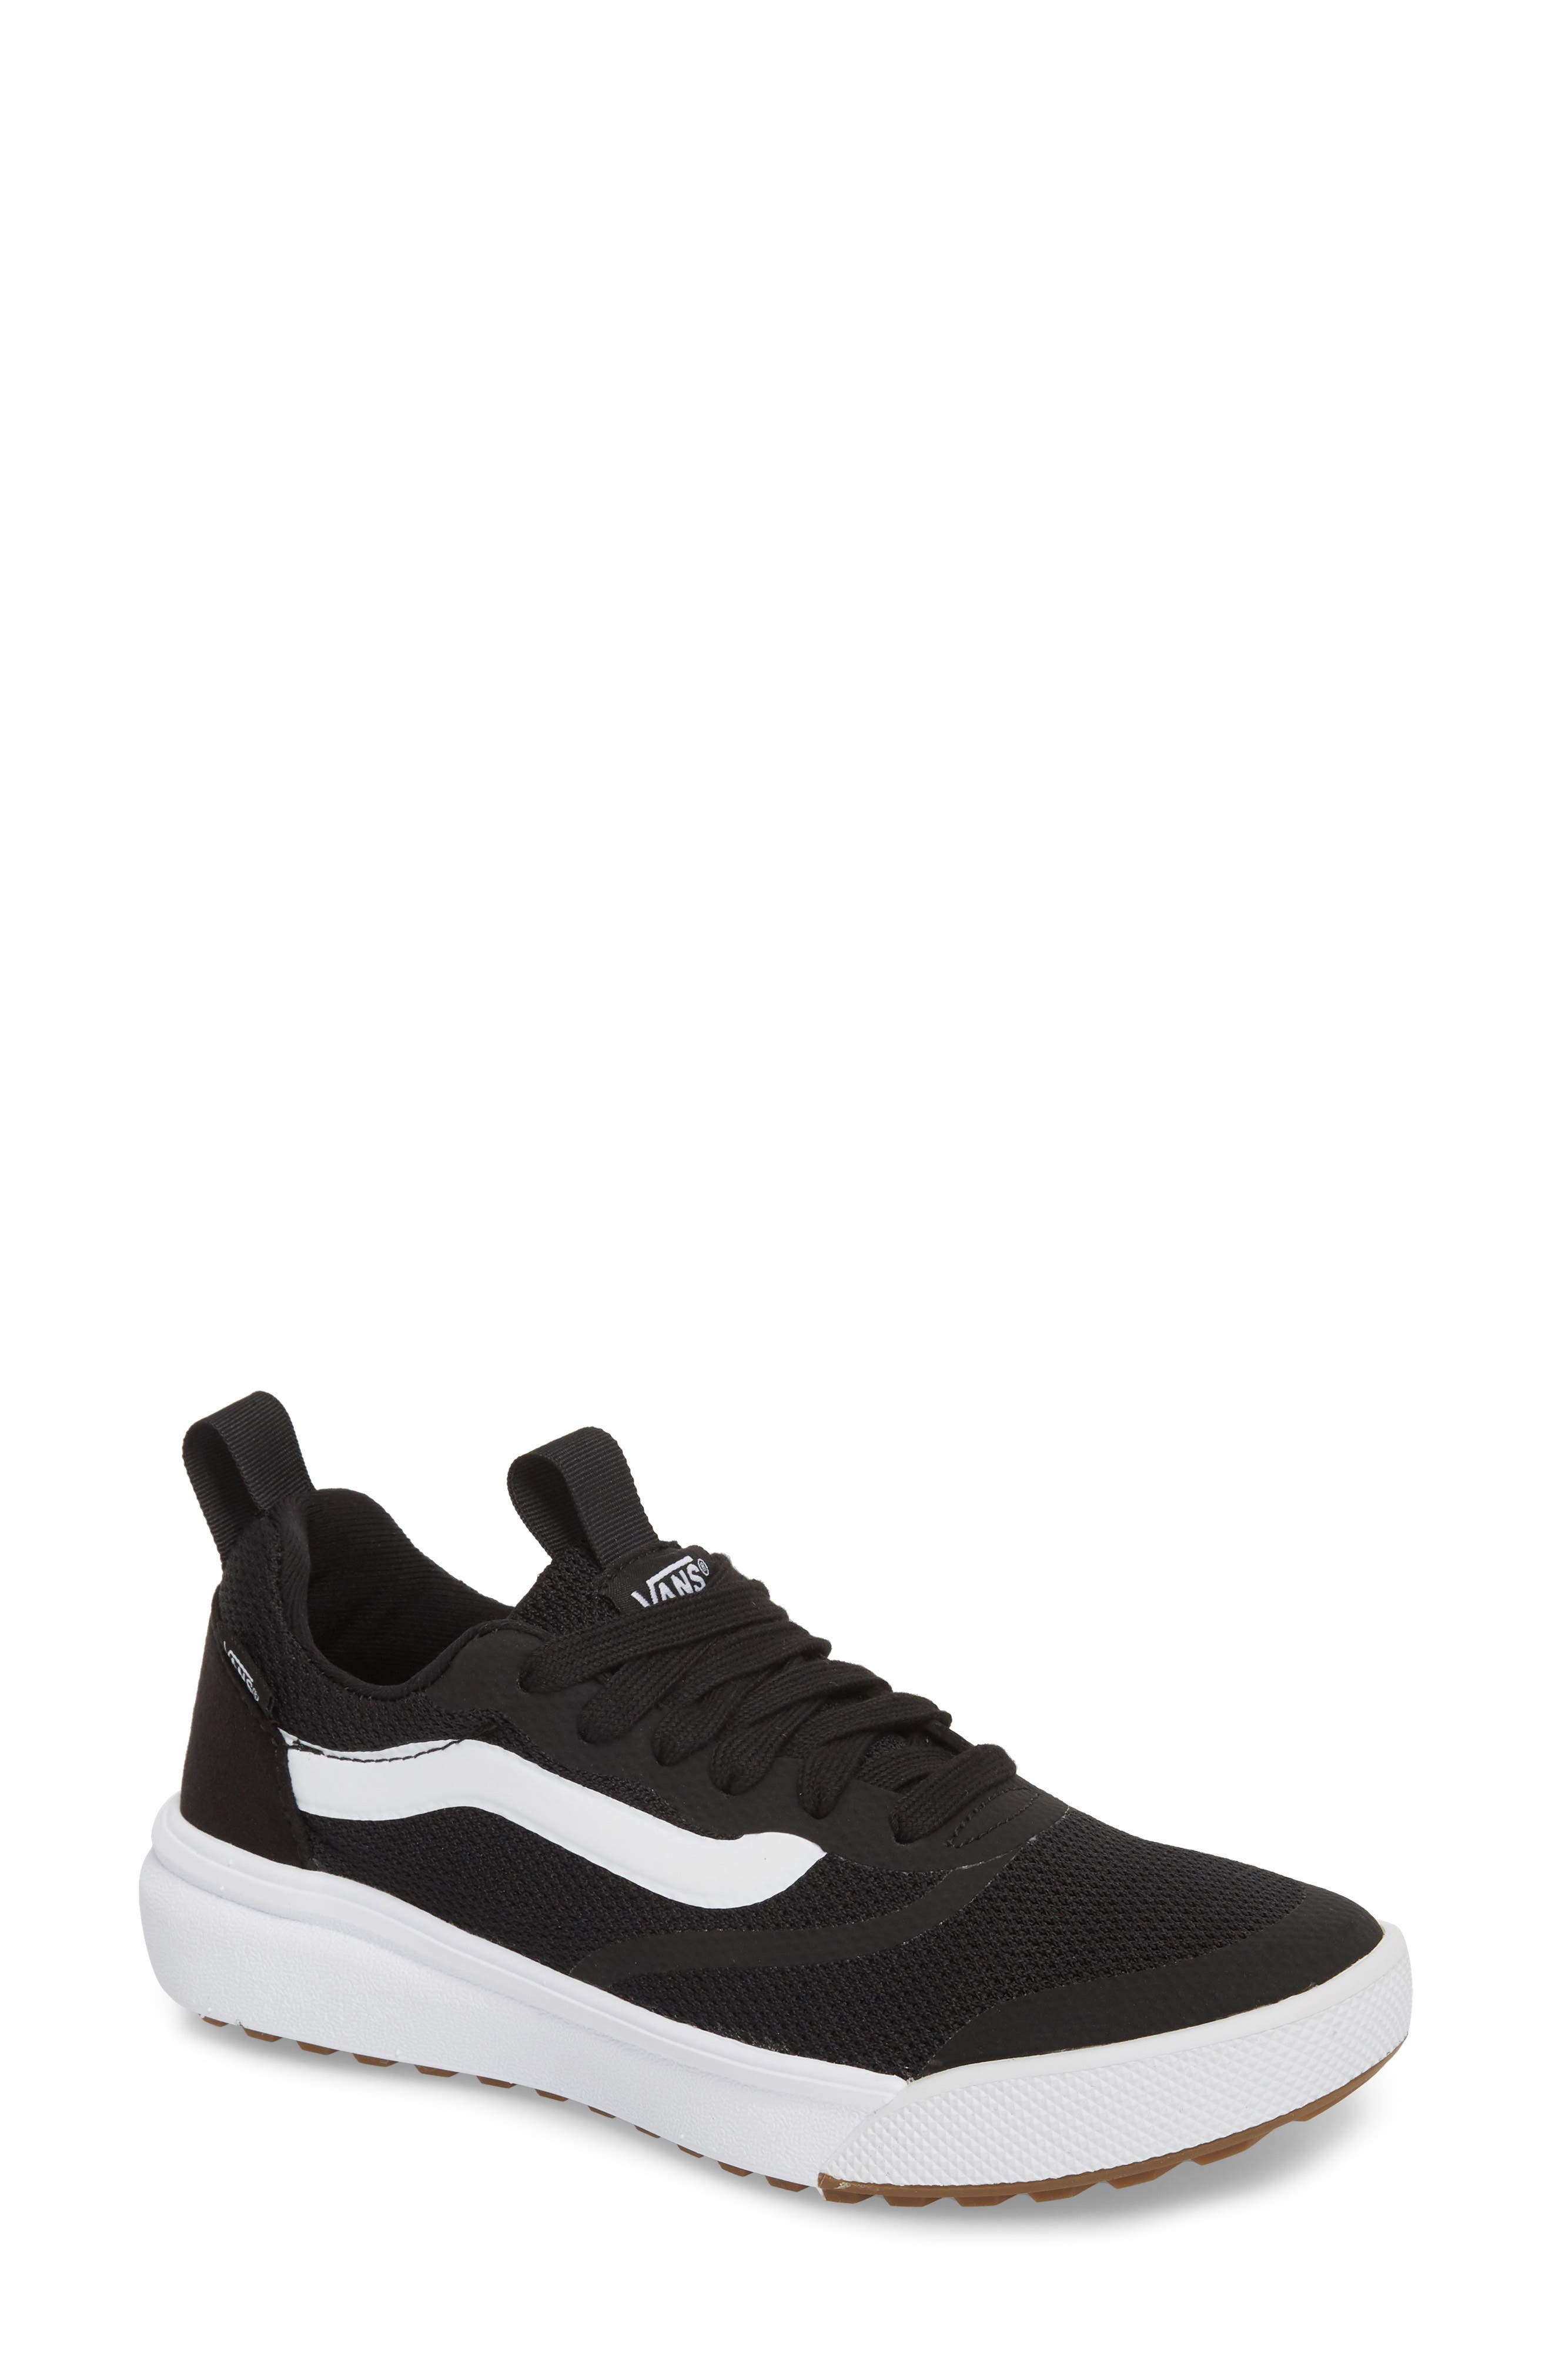 UltraRange Rapidweld Sneaker,                         Main,                         color, BLACK/ BLACK/ WHITE